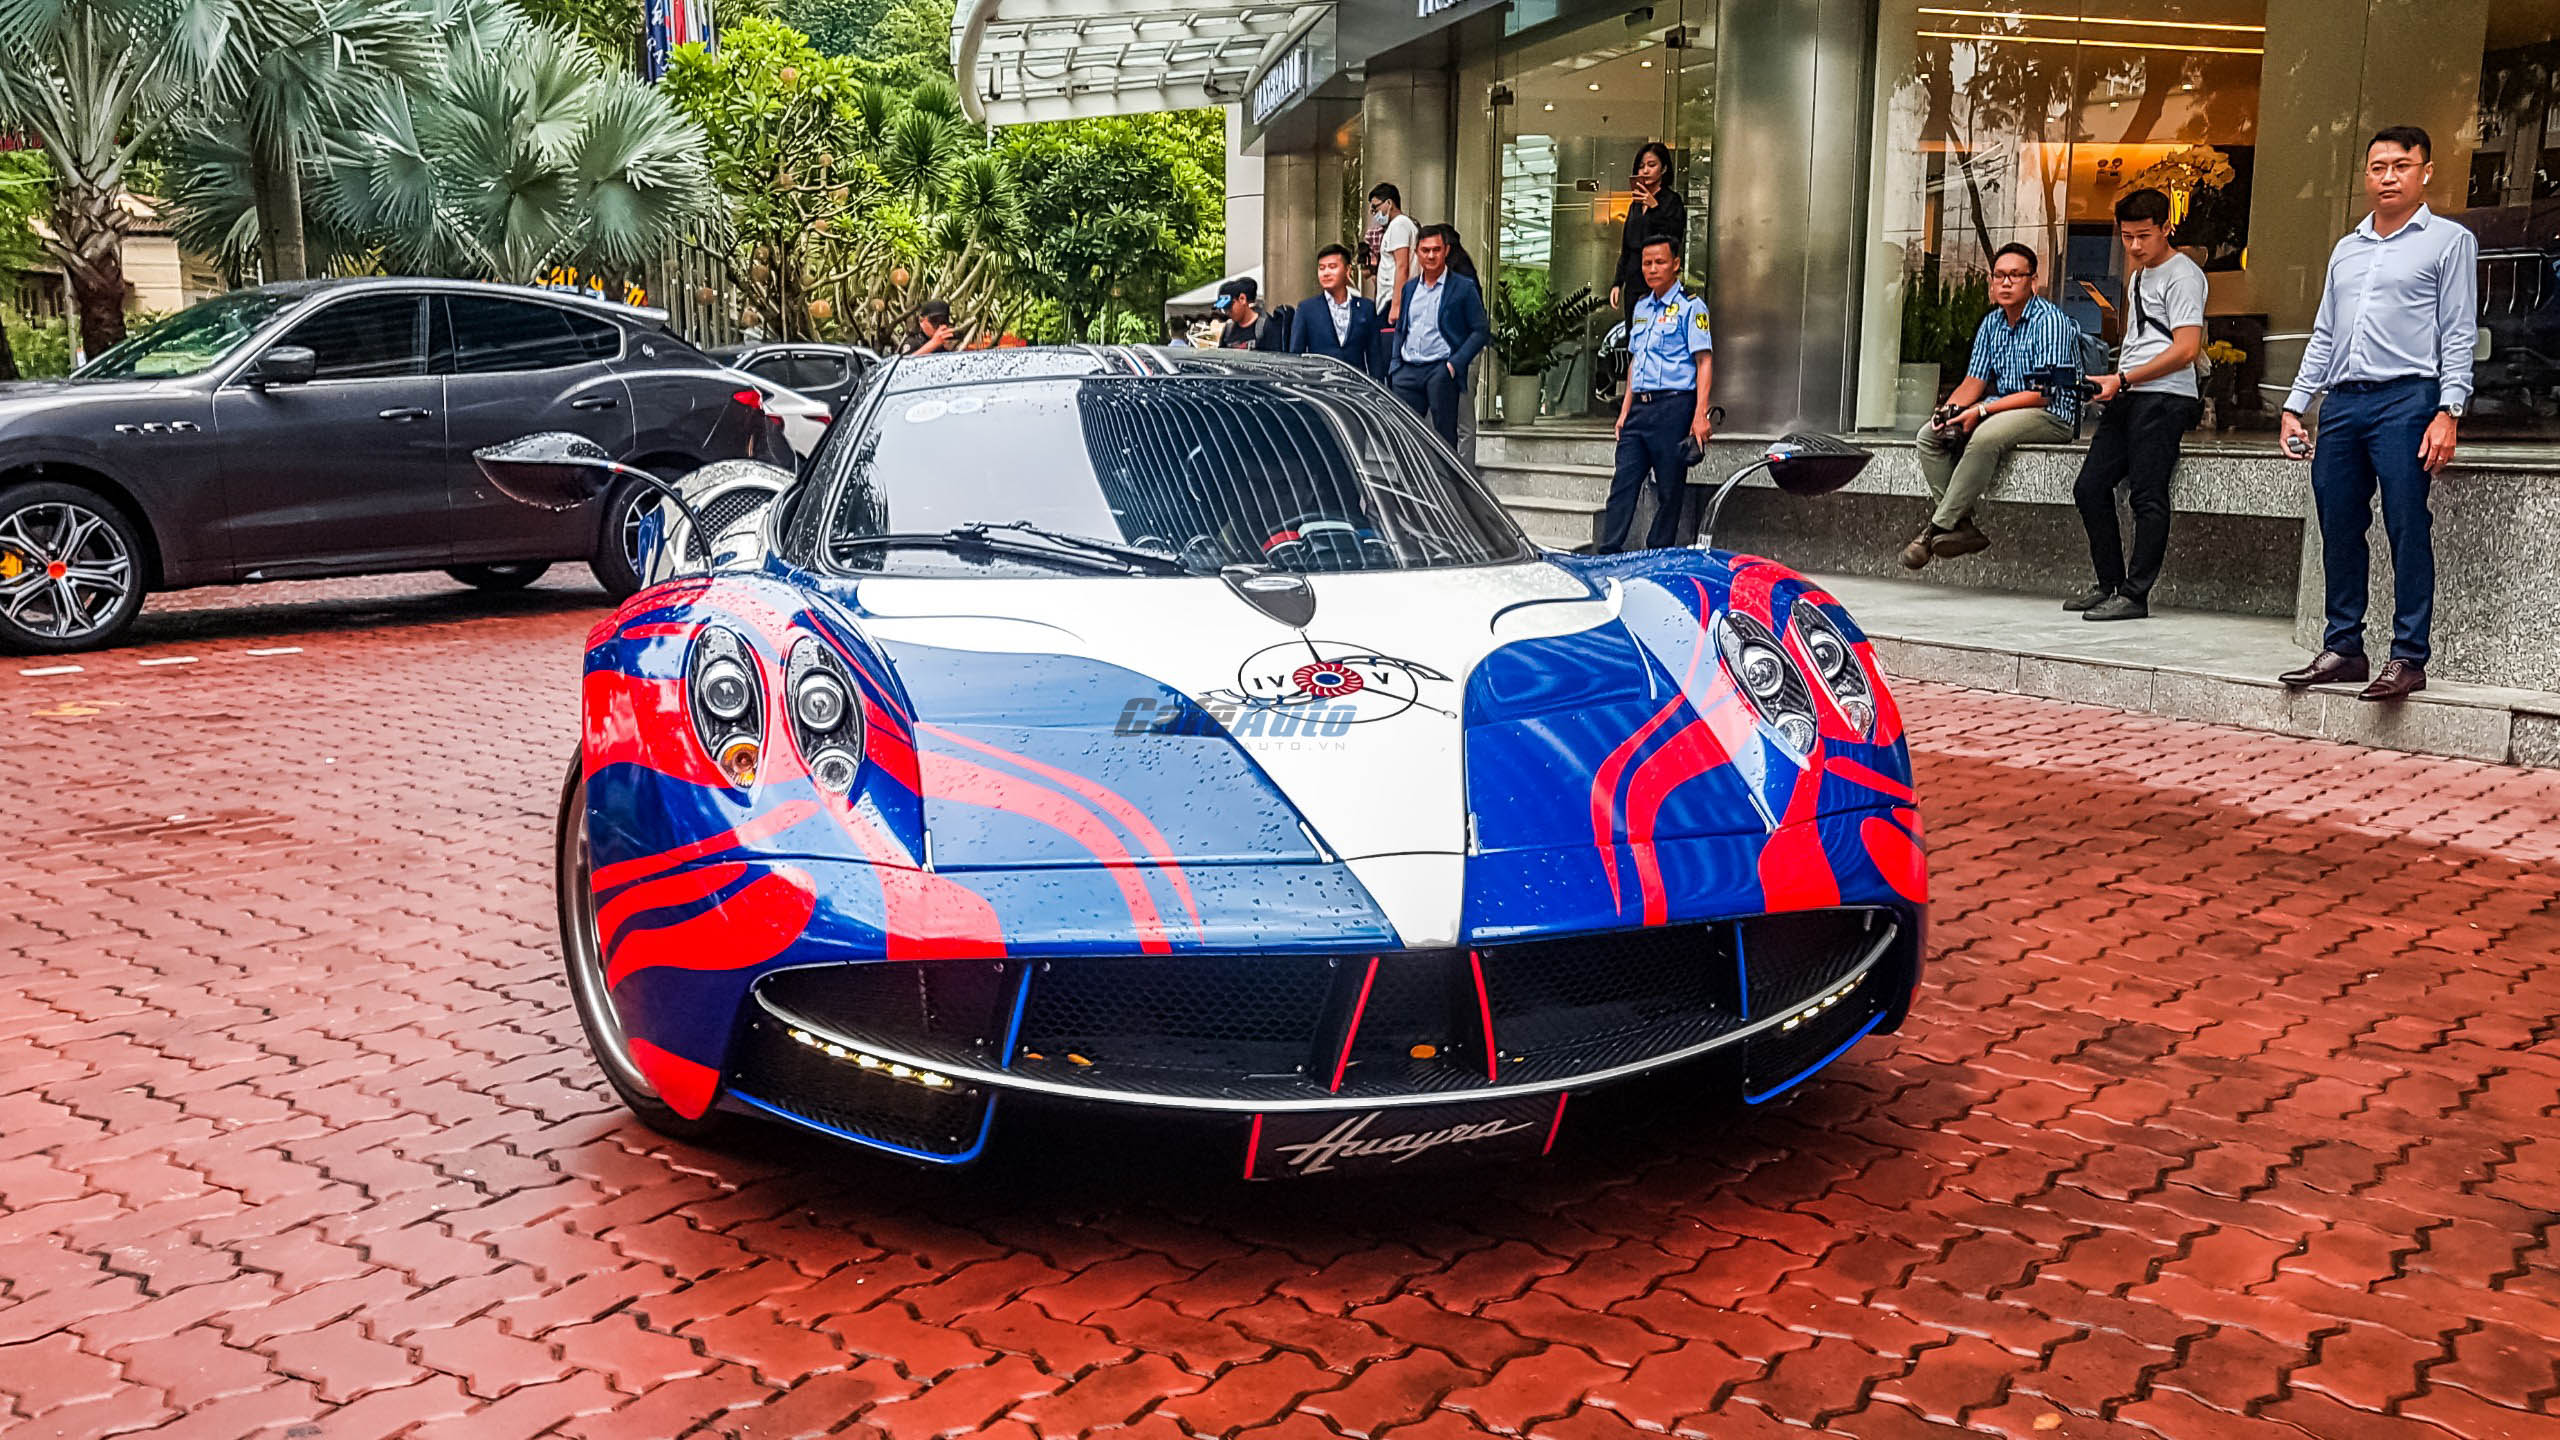 paganihuayra-cafeautovn-10